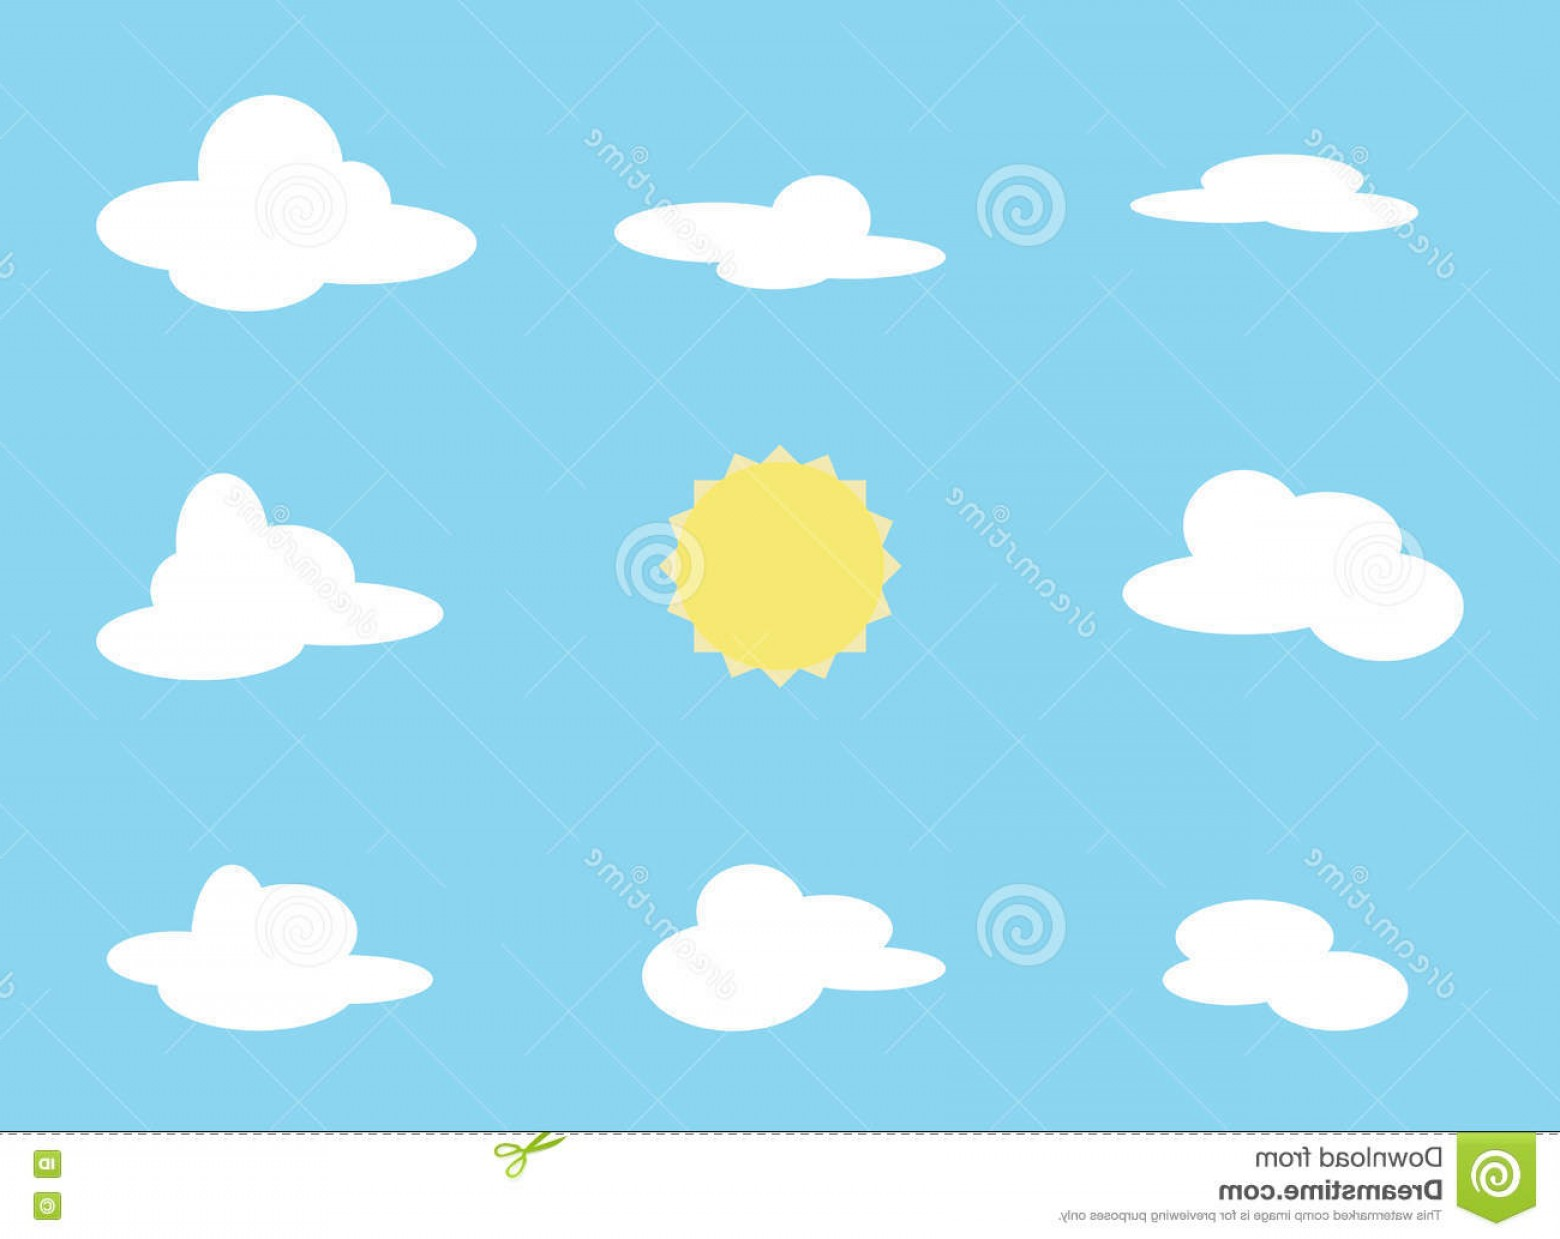 Blue Background Vector Cartoon Sun: Stock Illustration Vector Set Cloud Object Sun Collection Cartoon Items Blue Background Different Shapes Clouds Image